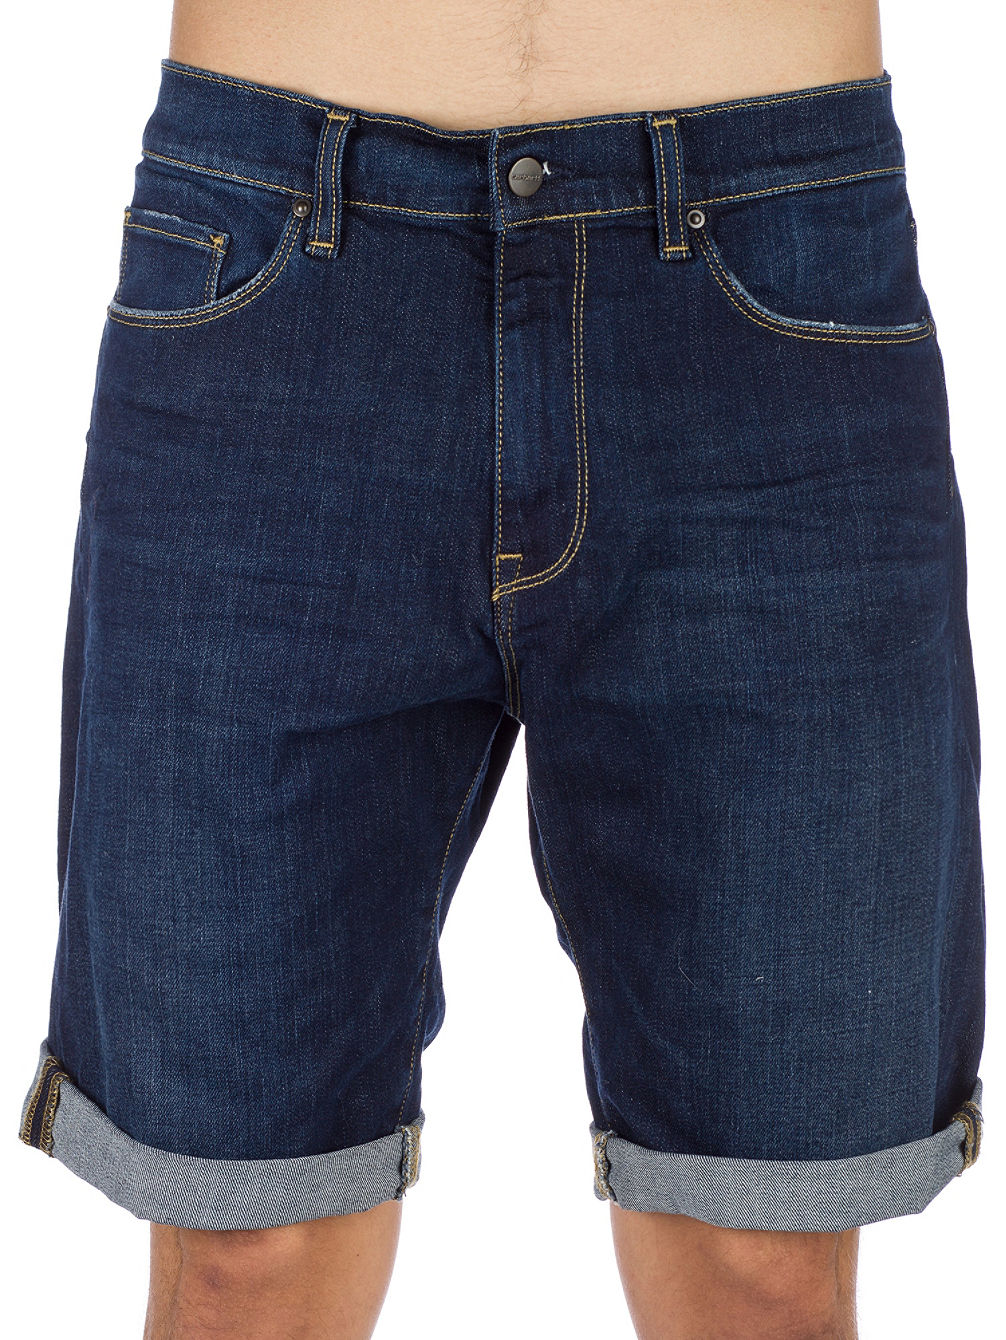 Swell Shorts